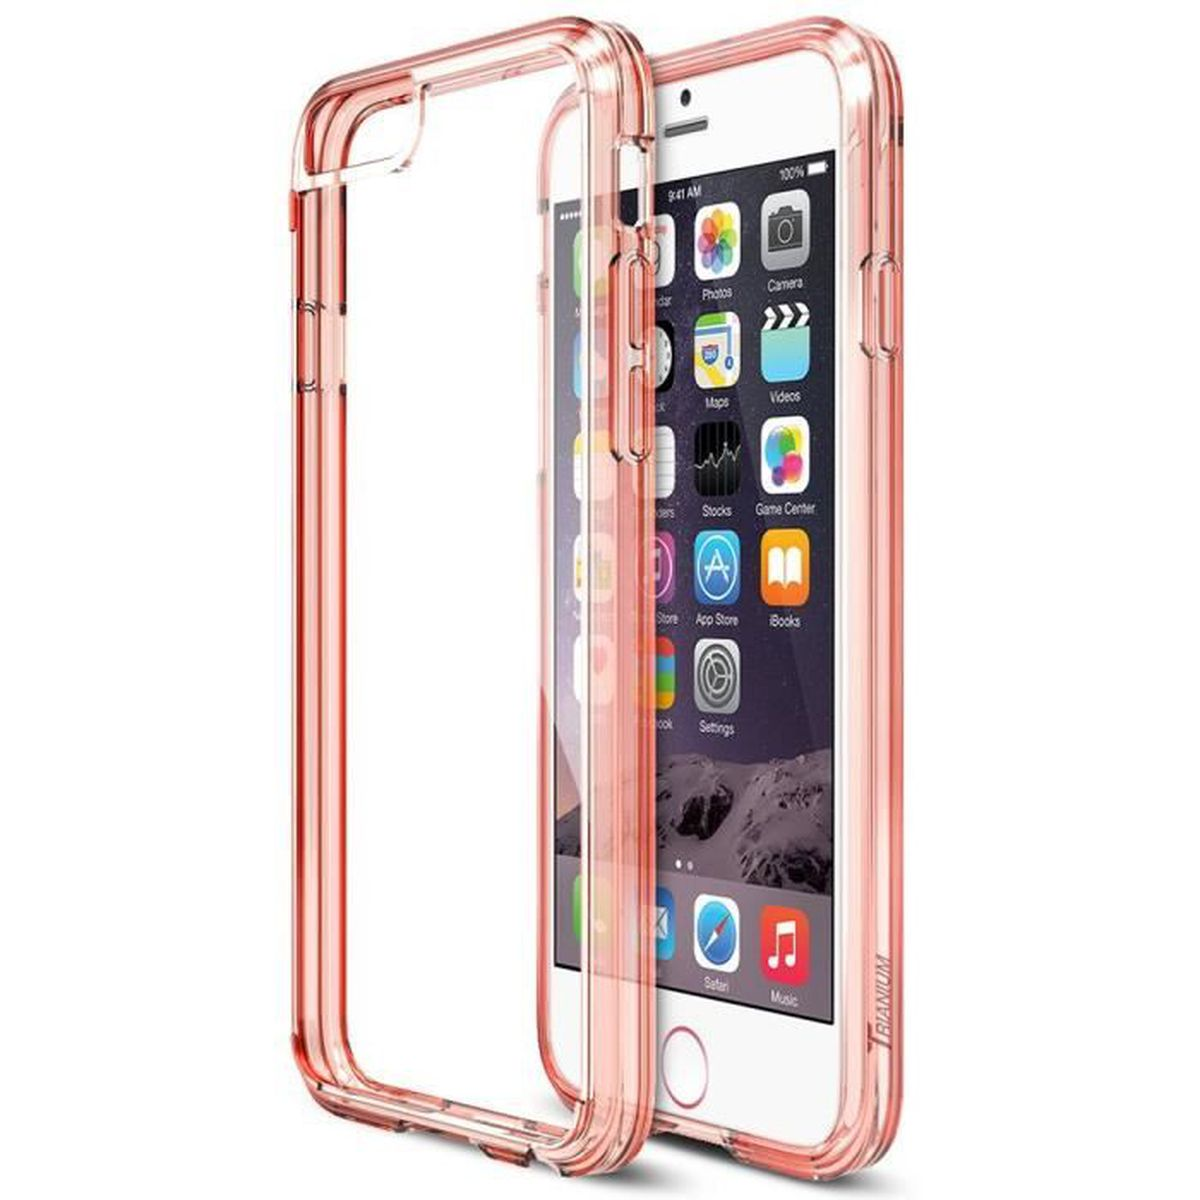 Housse iphone 7 plus de protection en silicone tpu pour for Housse protection iphone 7